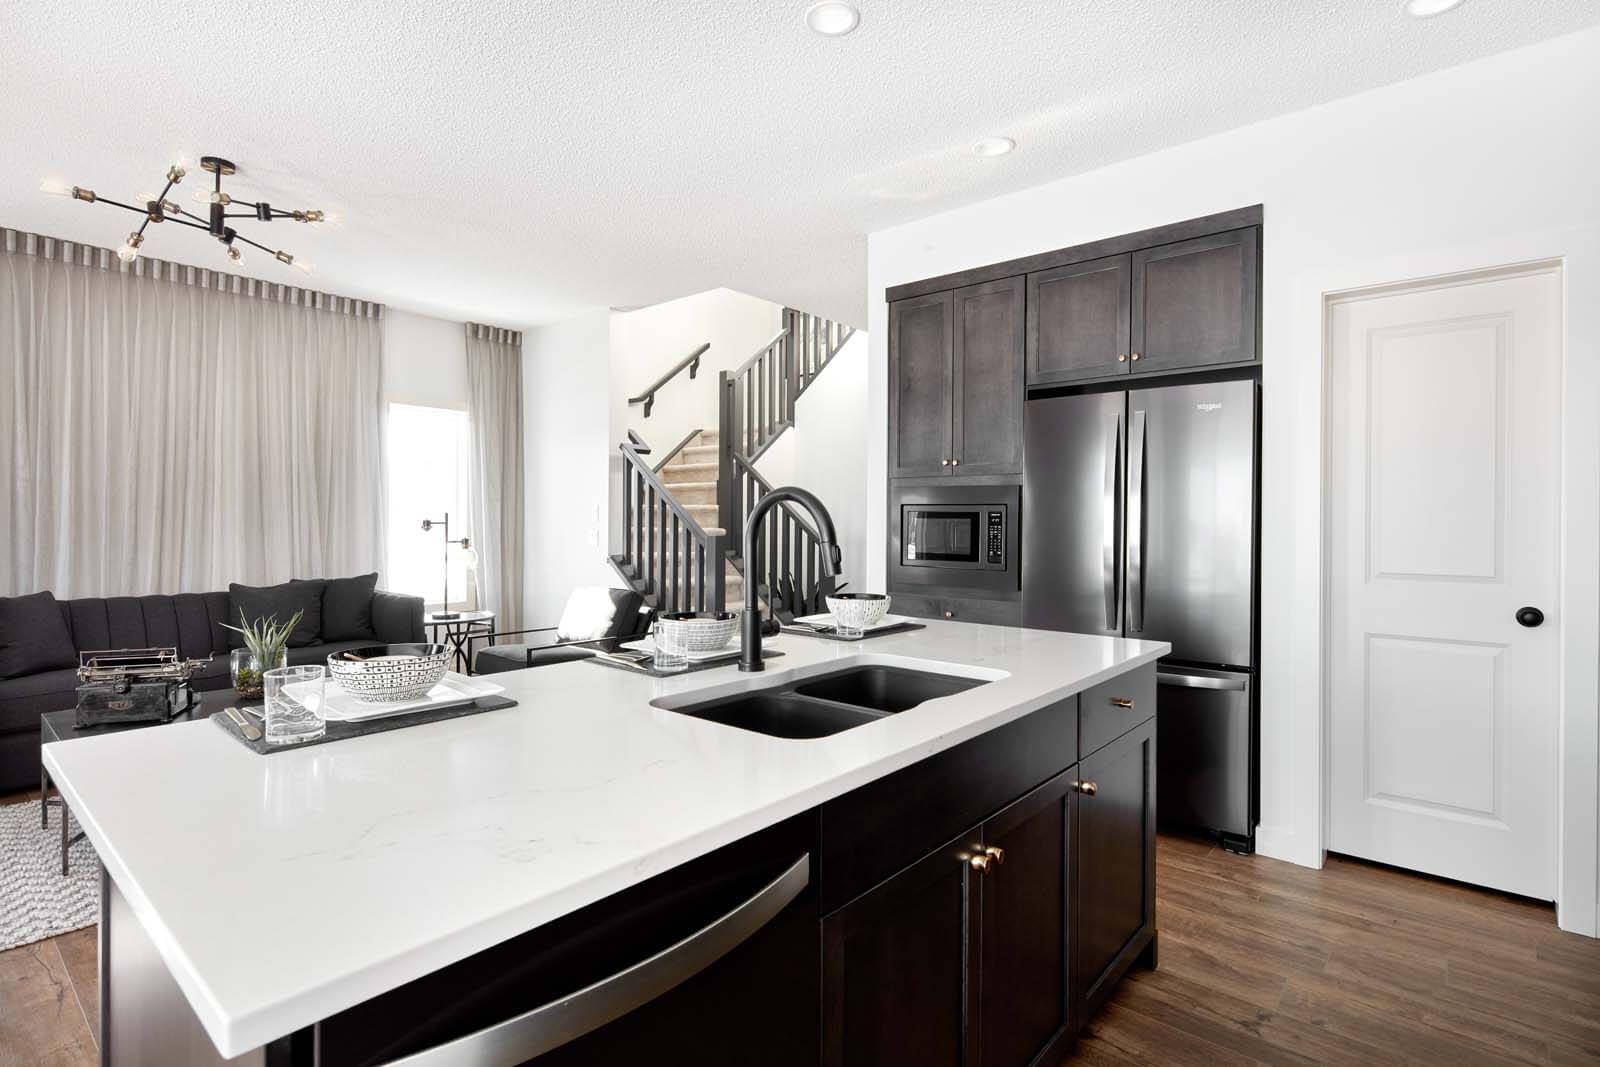 New Calgary  Model Home Rohan 1 in Savanna, located at 6 Savanna Gardens NE Built By Cardel Homes Calgary